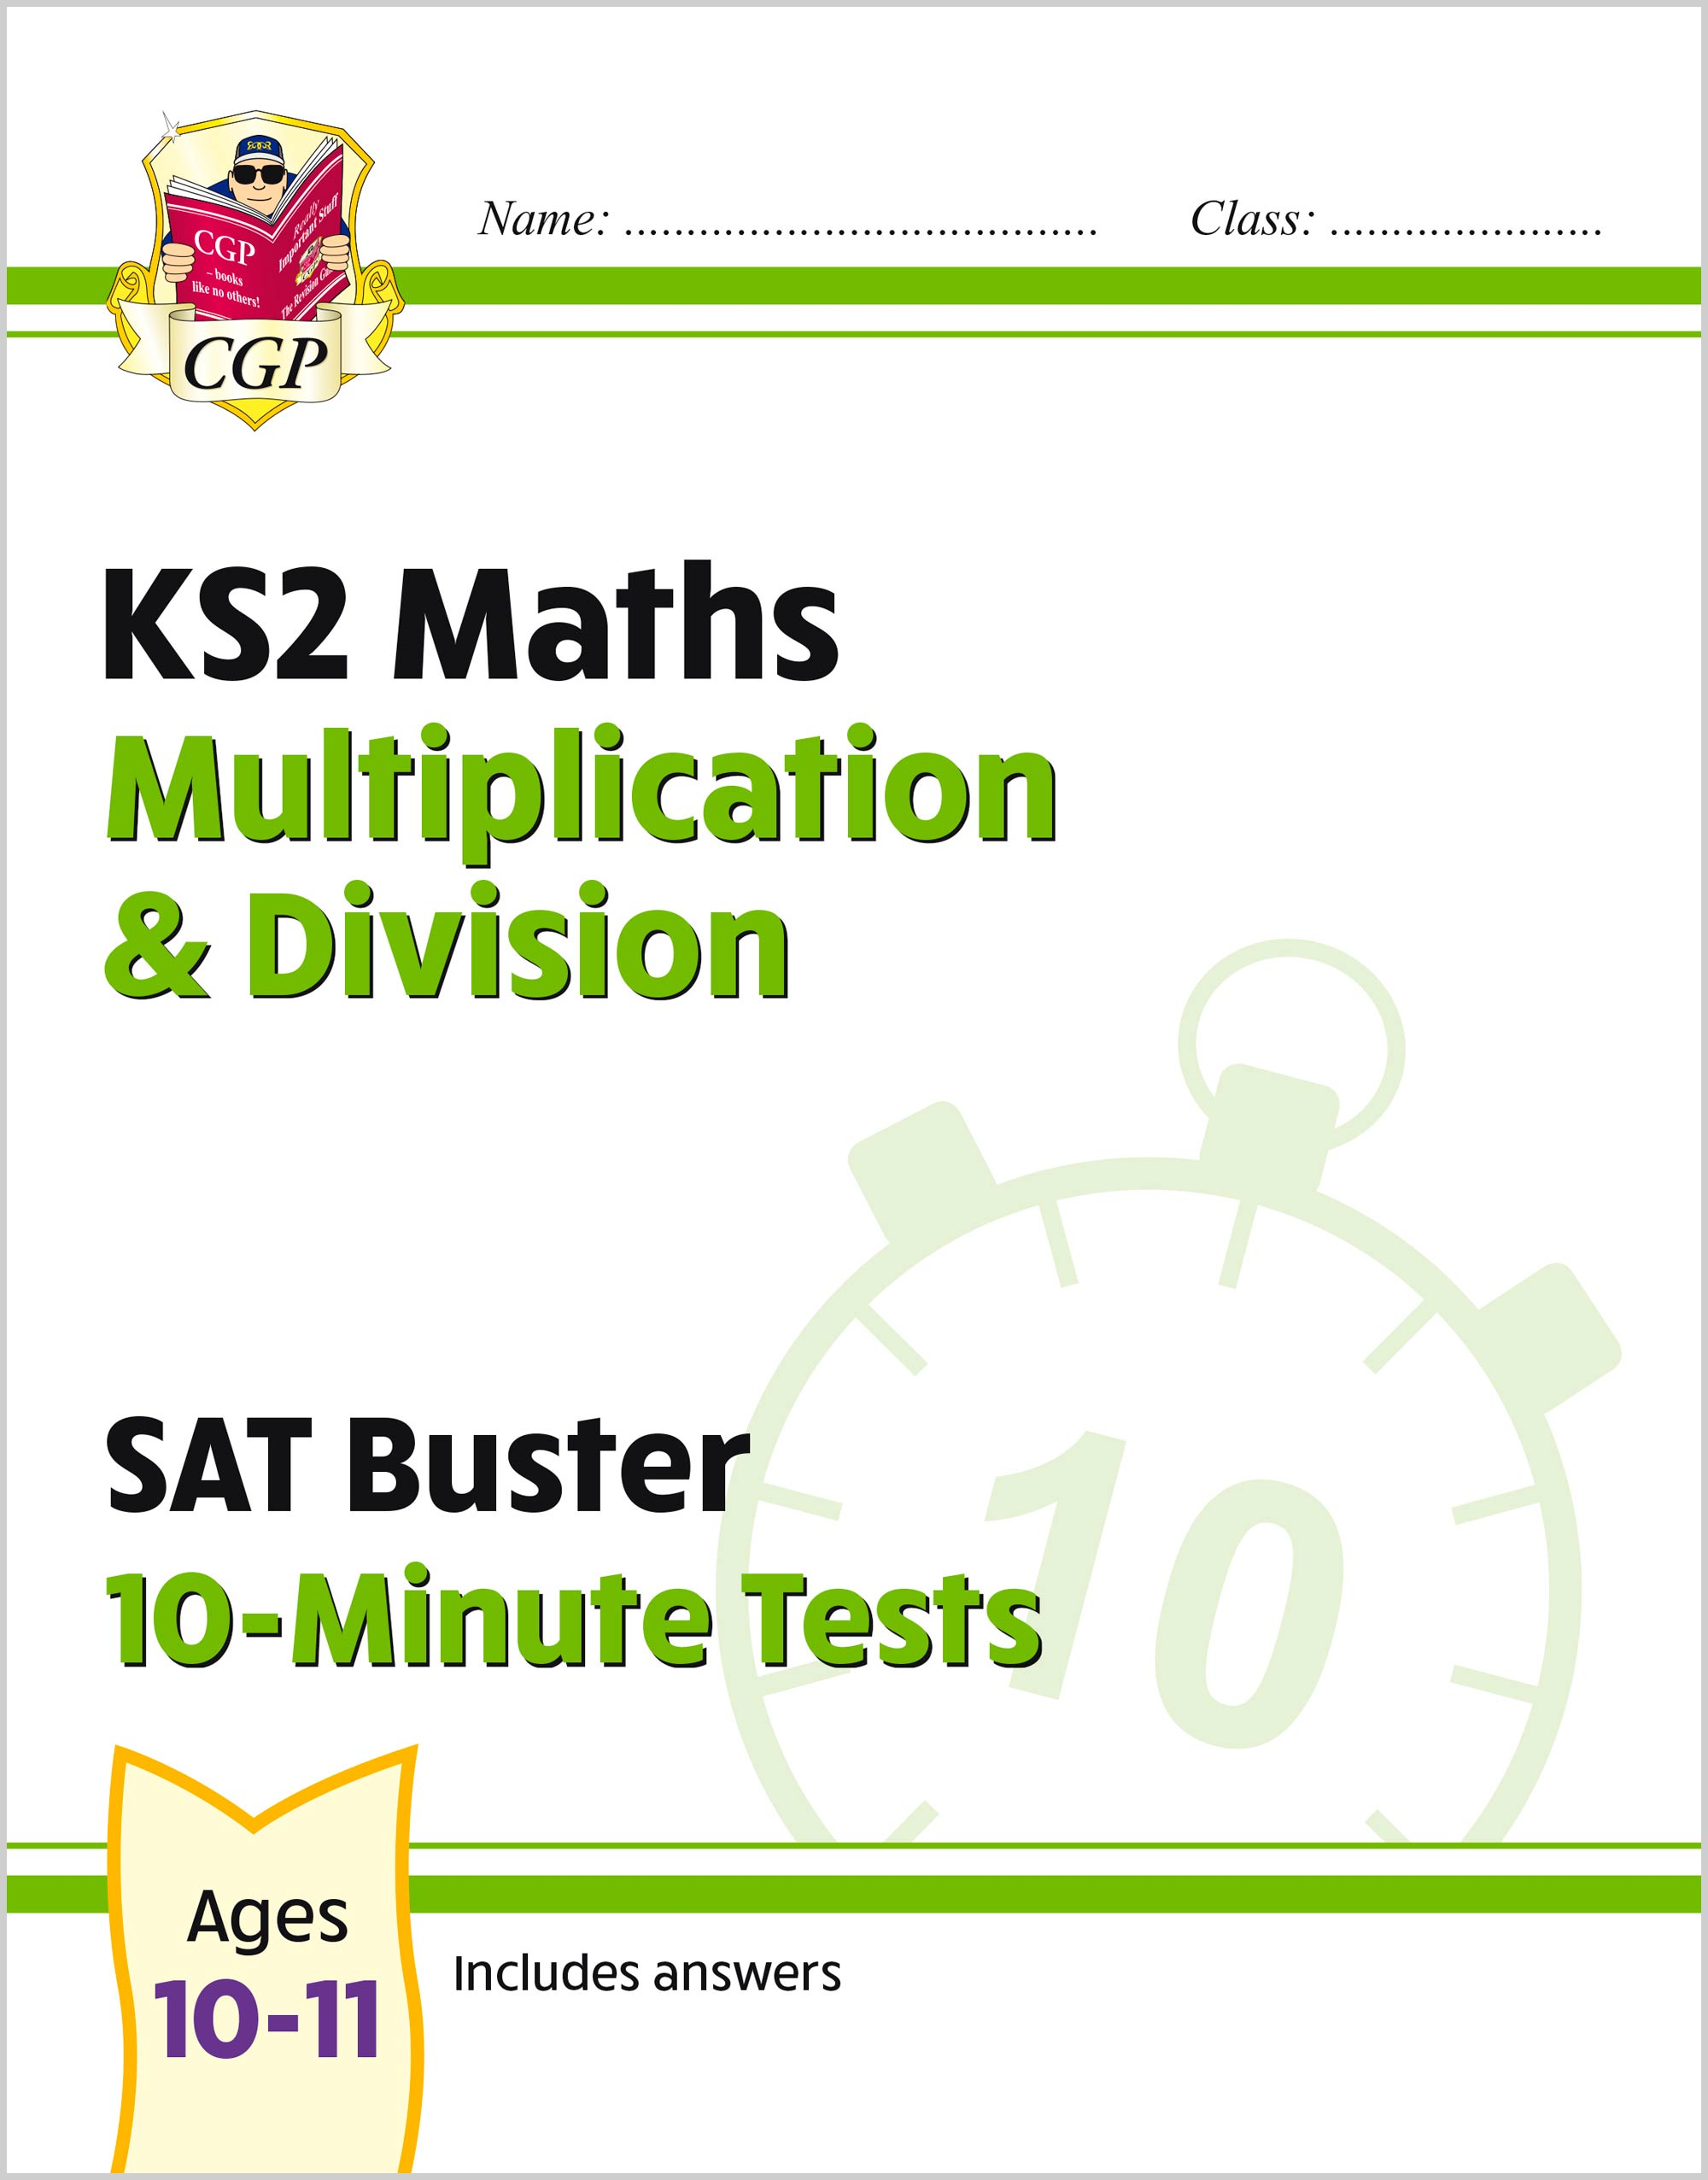 MMDXP21 - New KS2 Maths SAT Buster 10-Minute Tests - Multiplication & Division